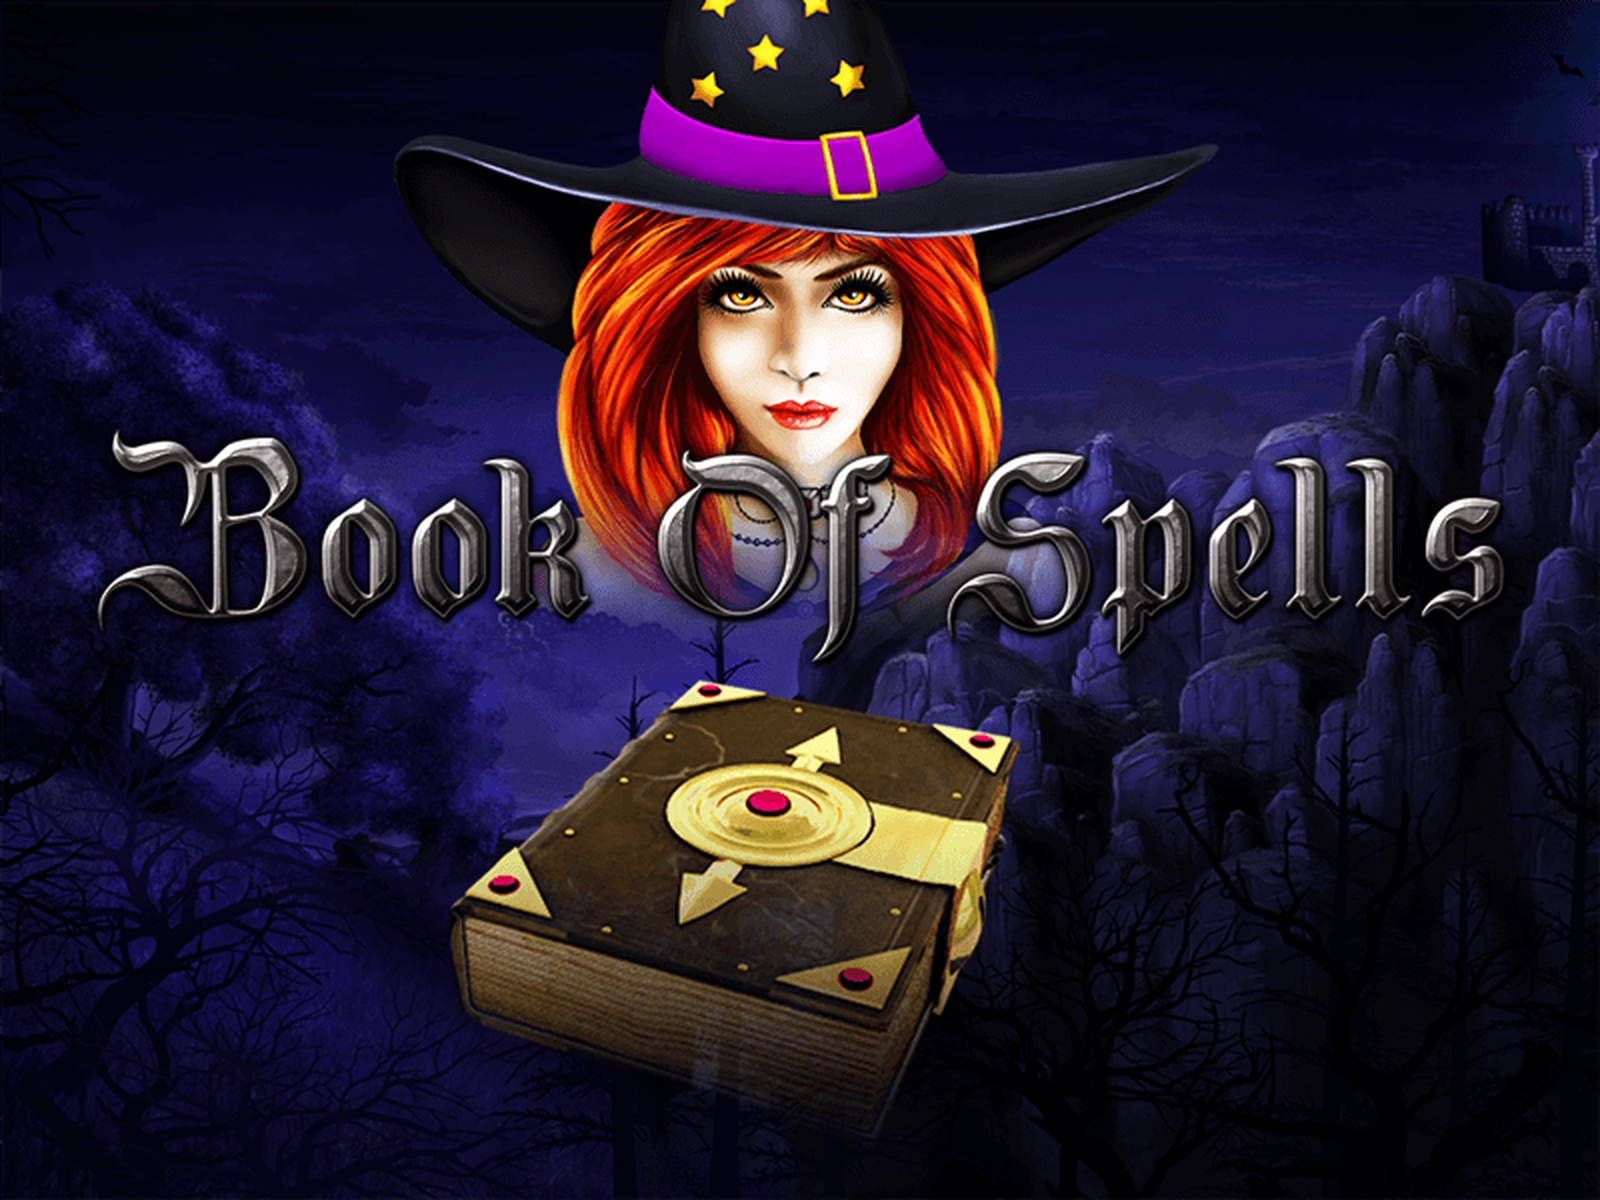 The Book of Spells (Tom Horn Gaming) Online Slot Demo Game by Tom Horn Gaming